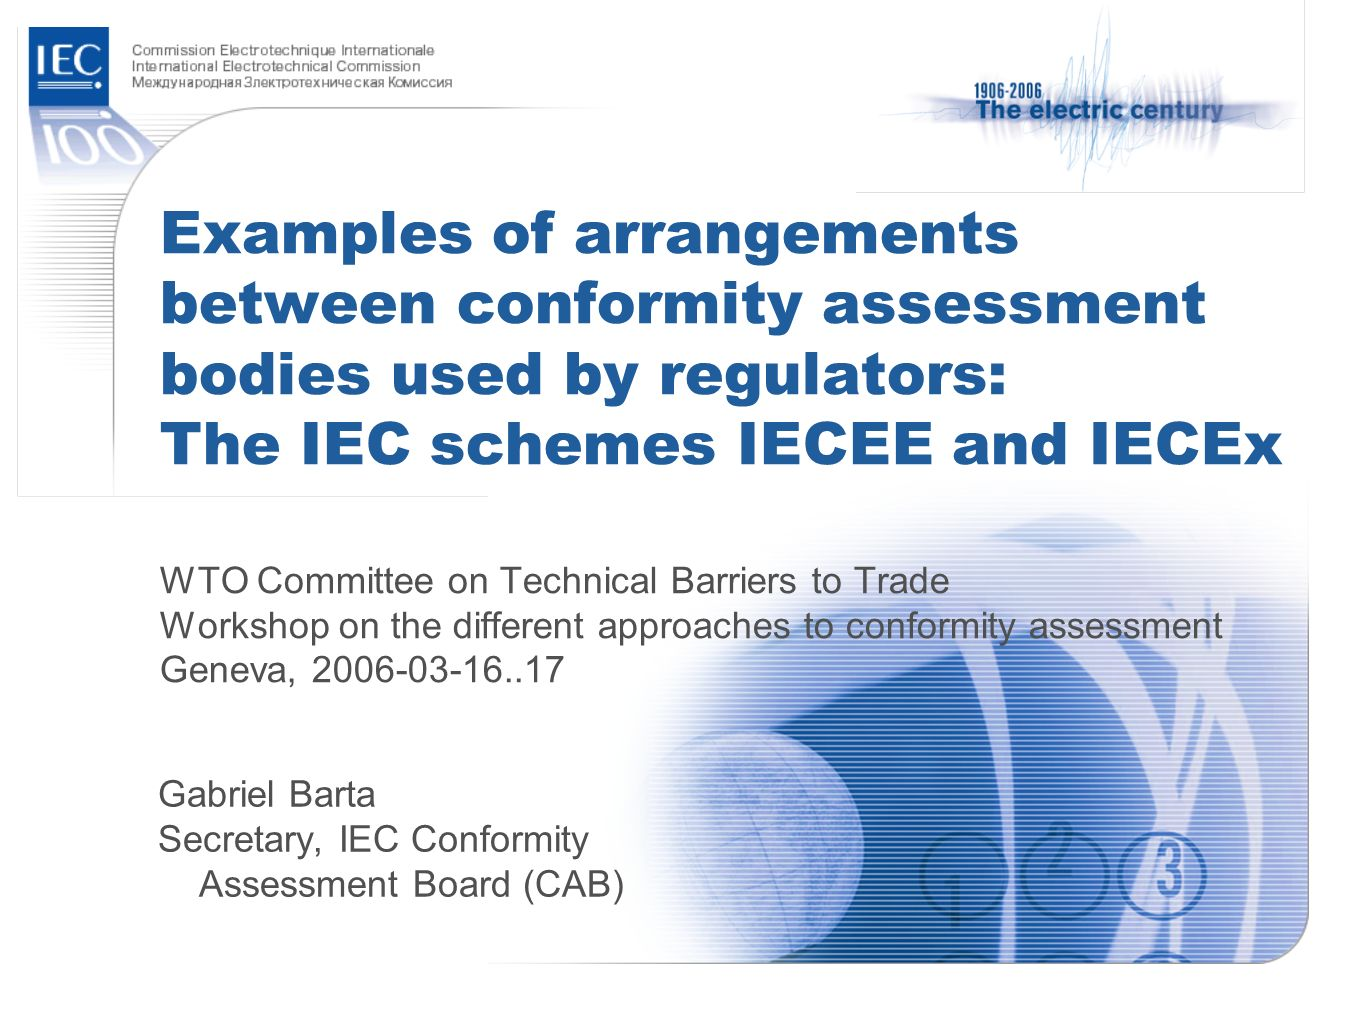 23 The IEC Scheme for Certification to Standards for Electrical Equipment for Explosive atmospheres